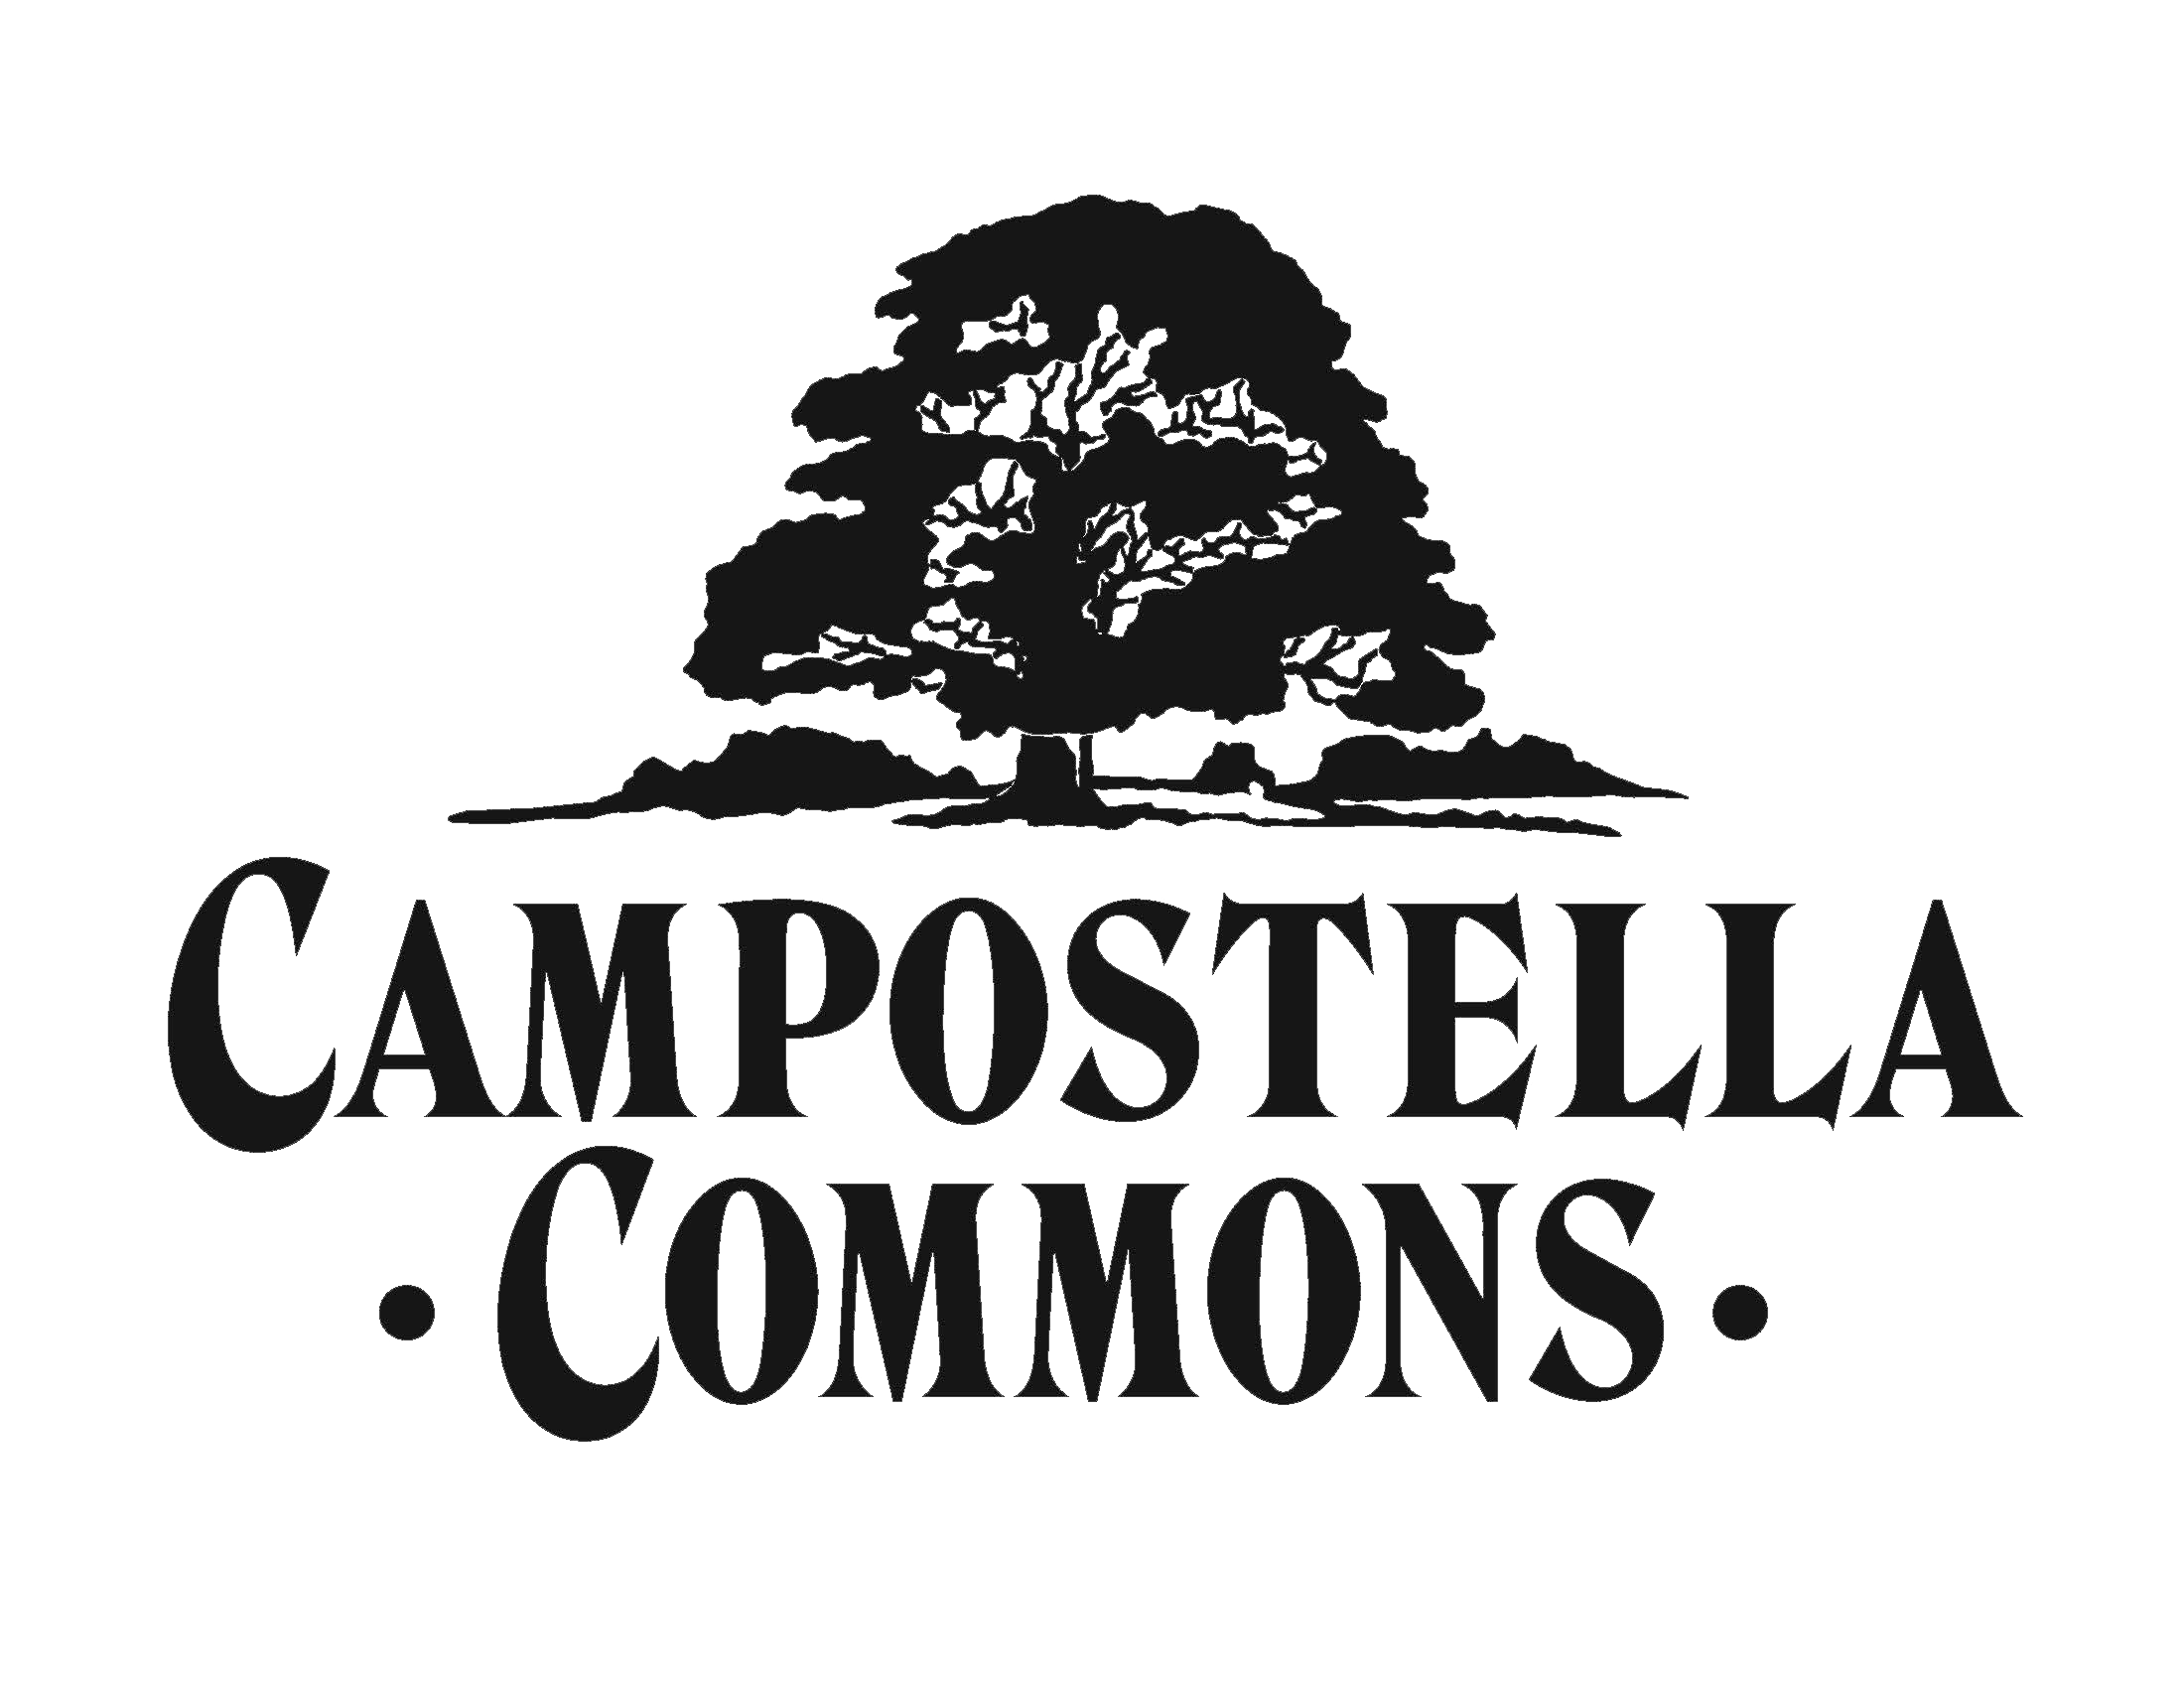 Campostella Commons Apartments